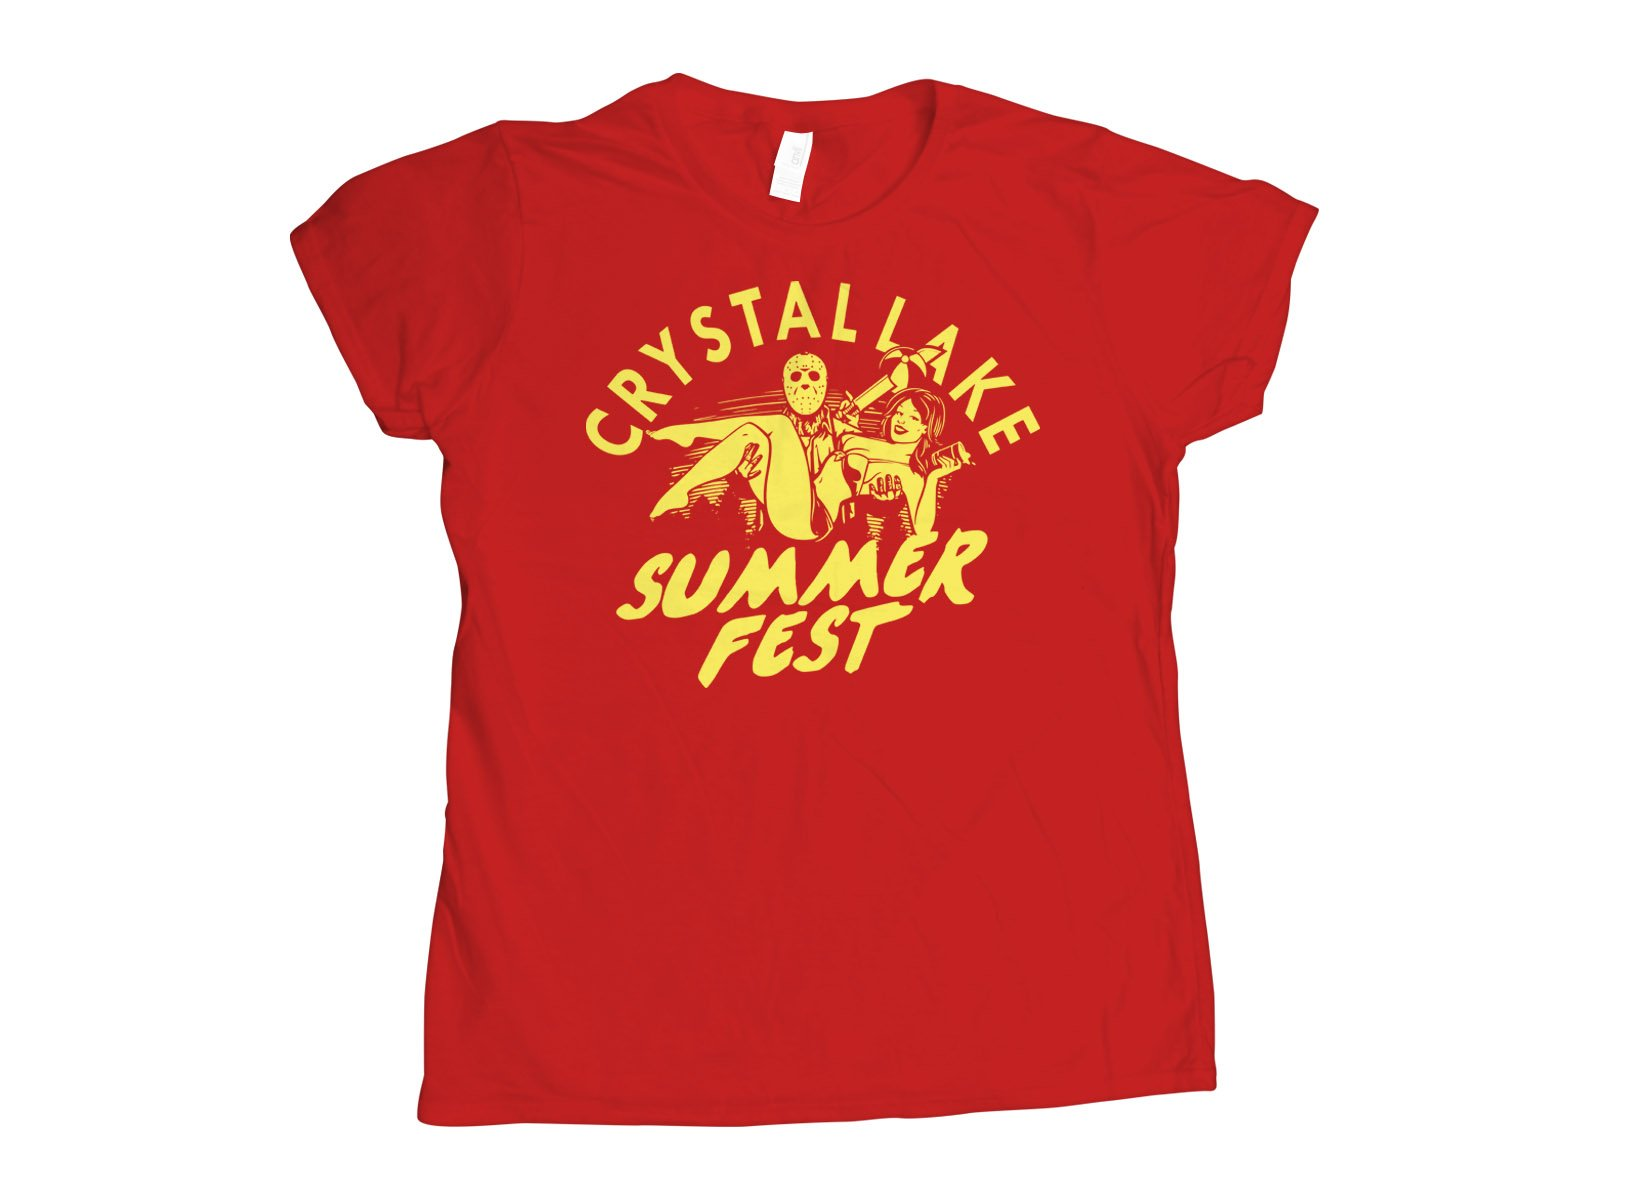 Crystal Lake Summer Fest on Womens T-Shirt